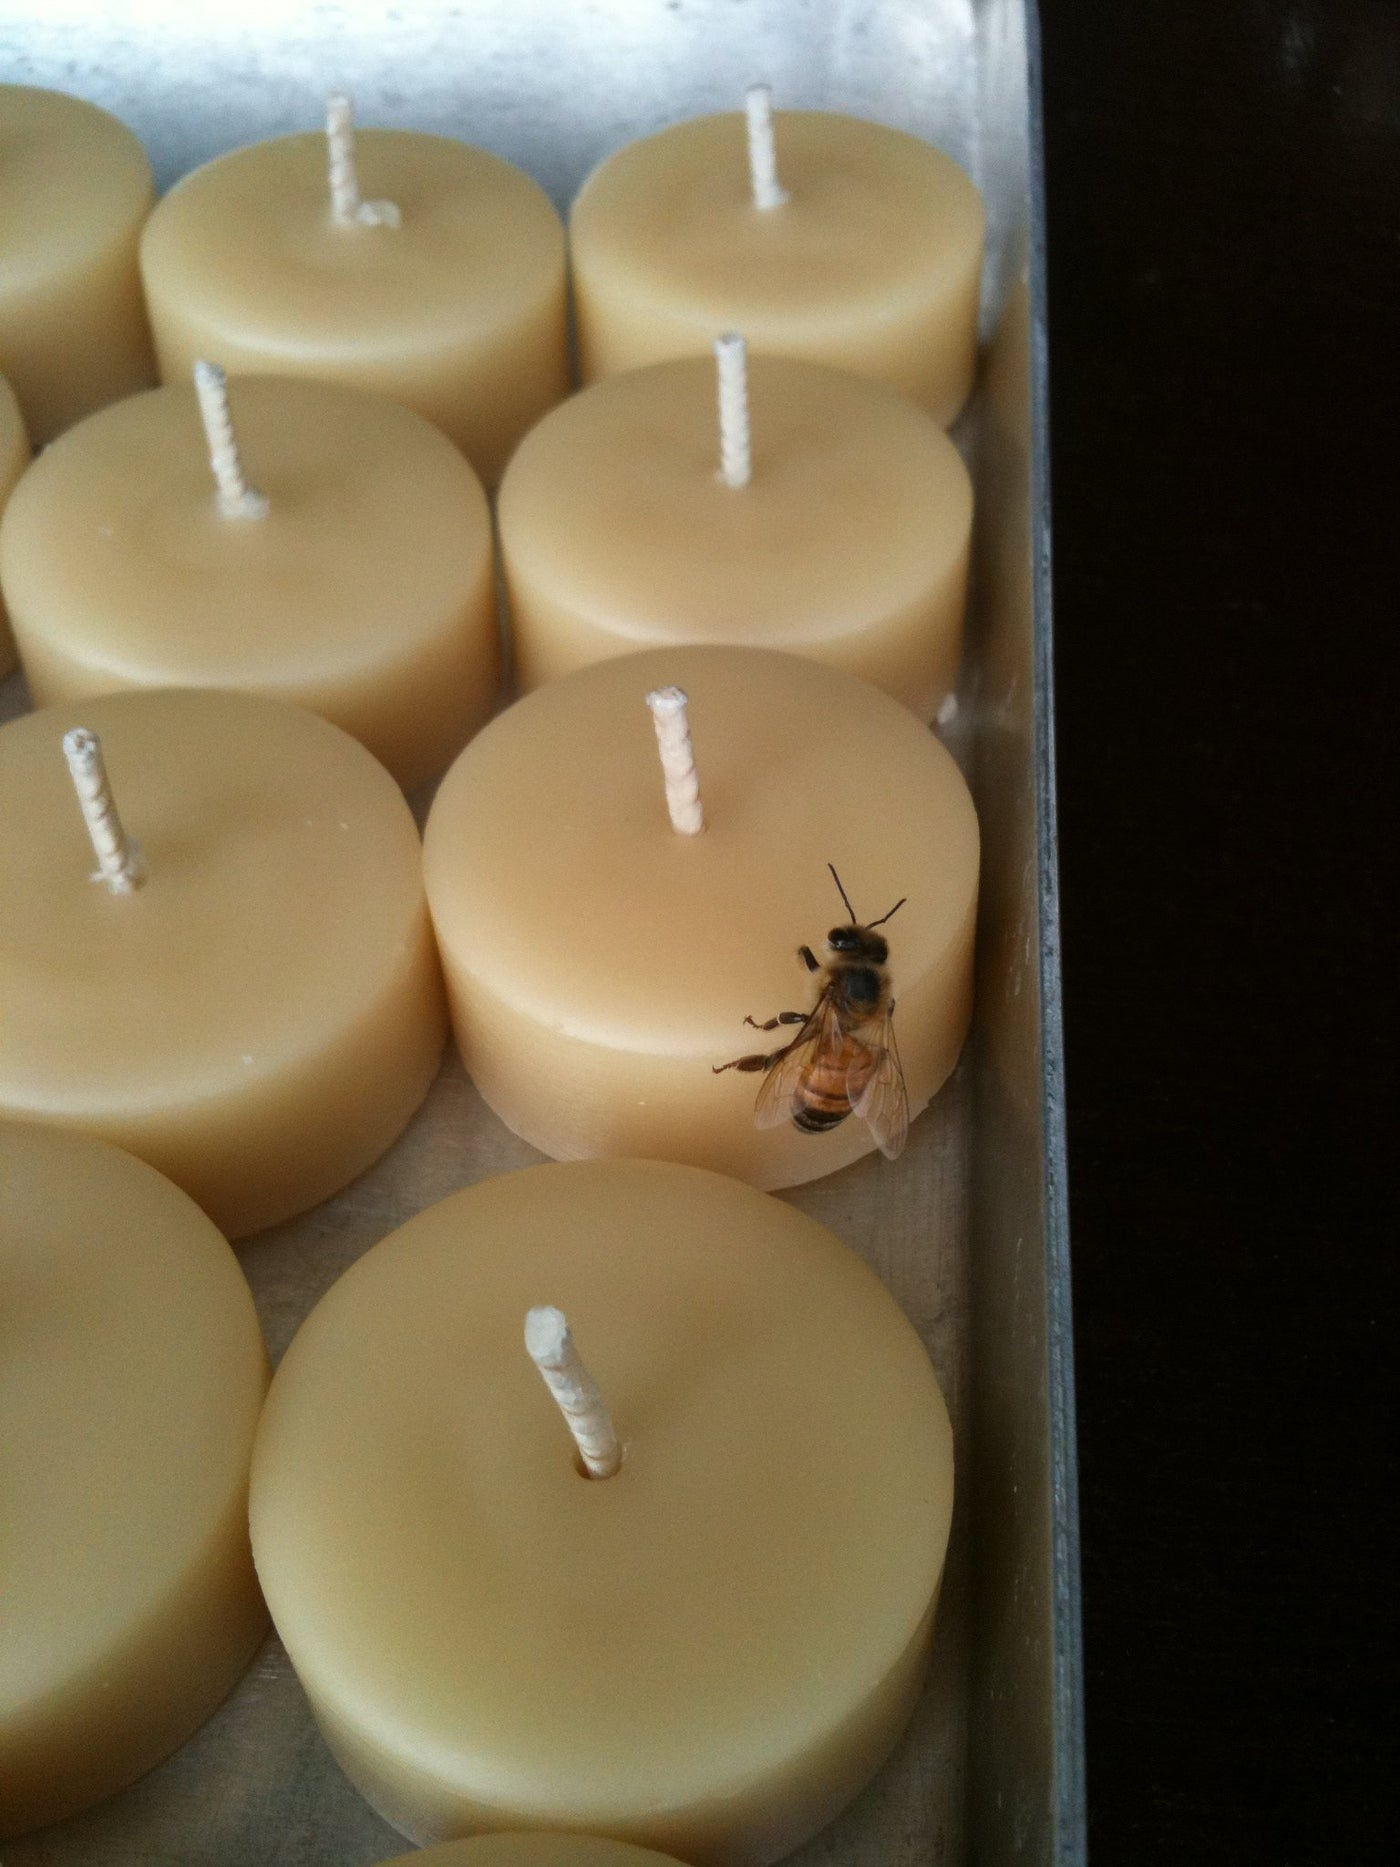 Queen B candles - 100% Pure Beeswax - as certified by the bees!